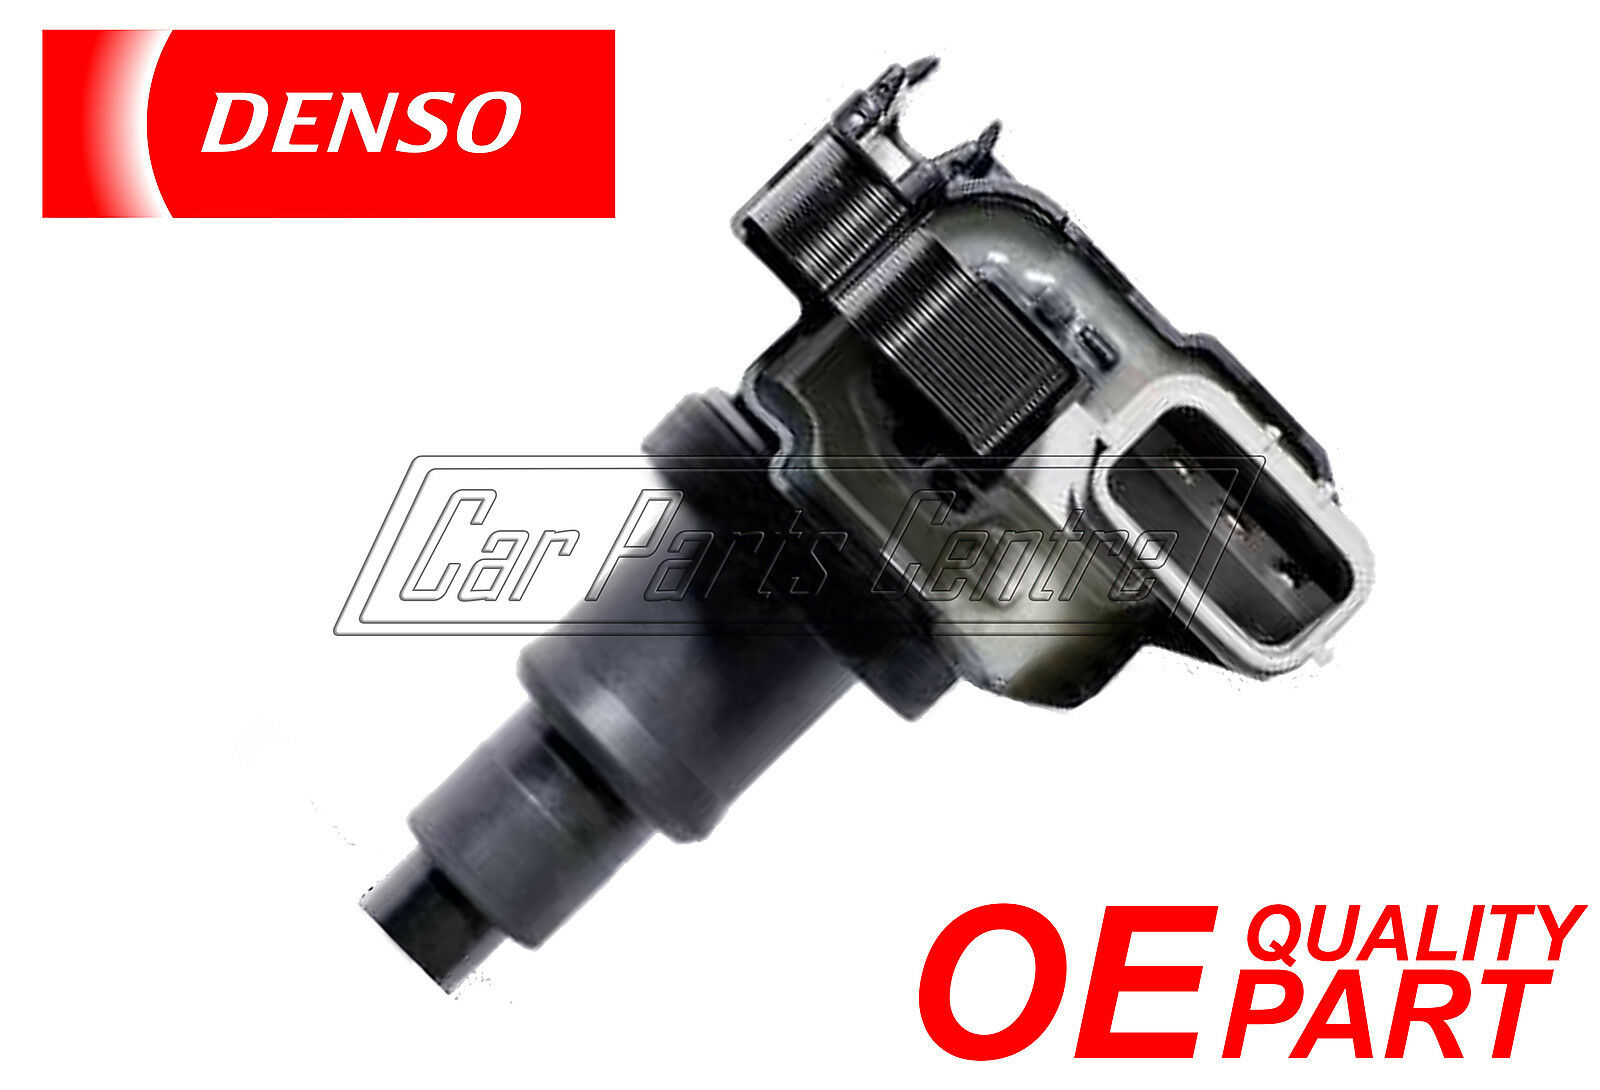 For Suzuki Liana 16 Petrol M16a Oe Quality Denso Ignition Coil Pack Timing Belt Stick 2002